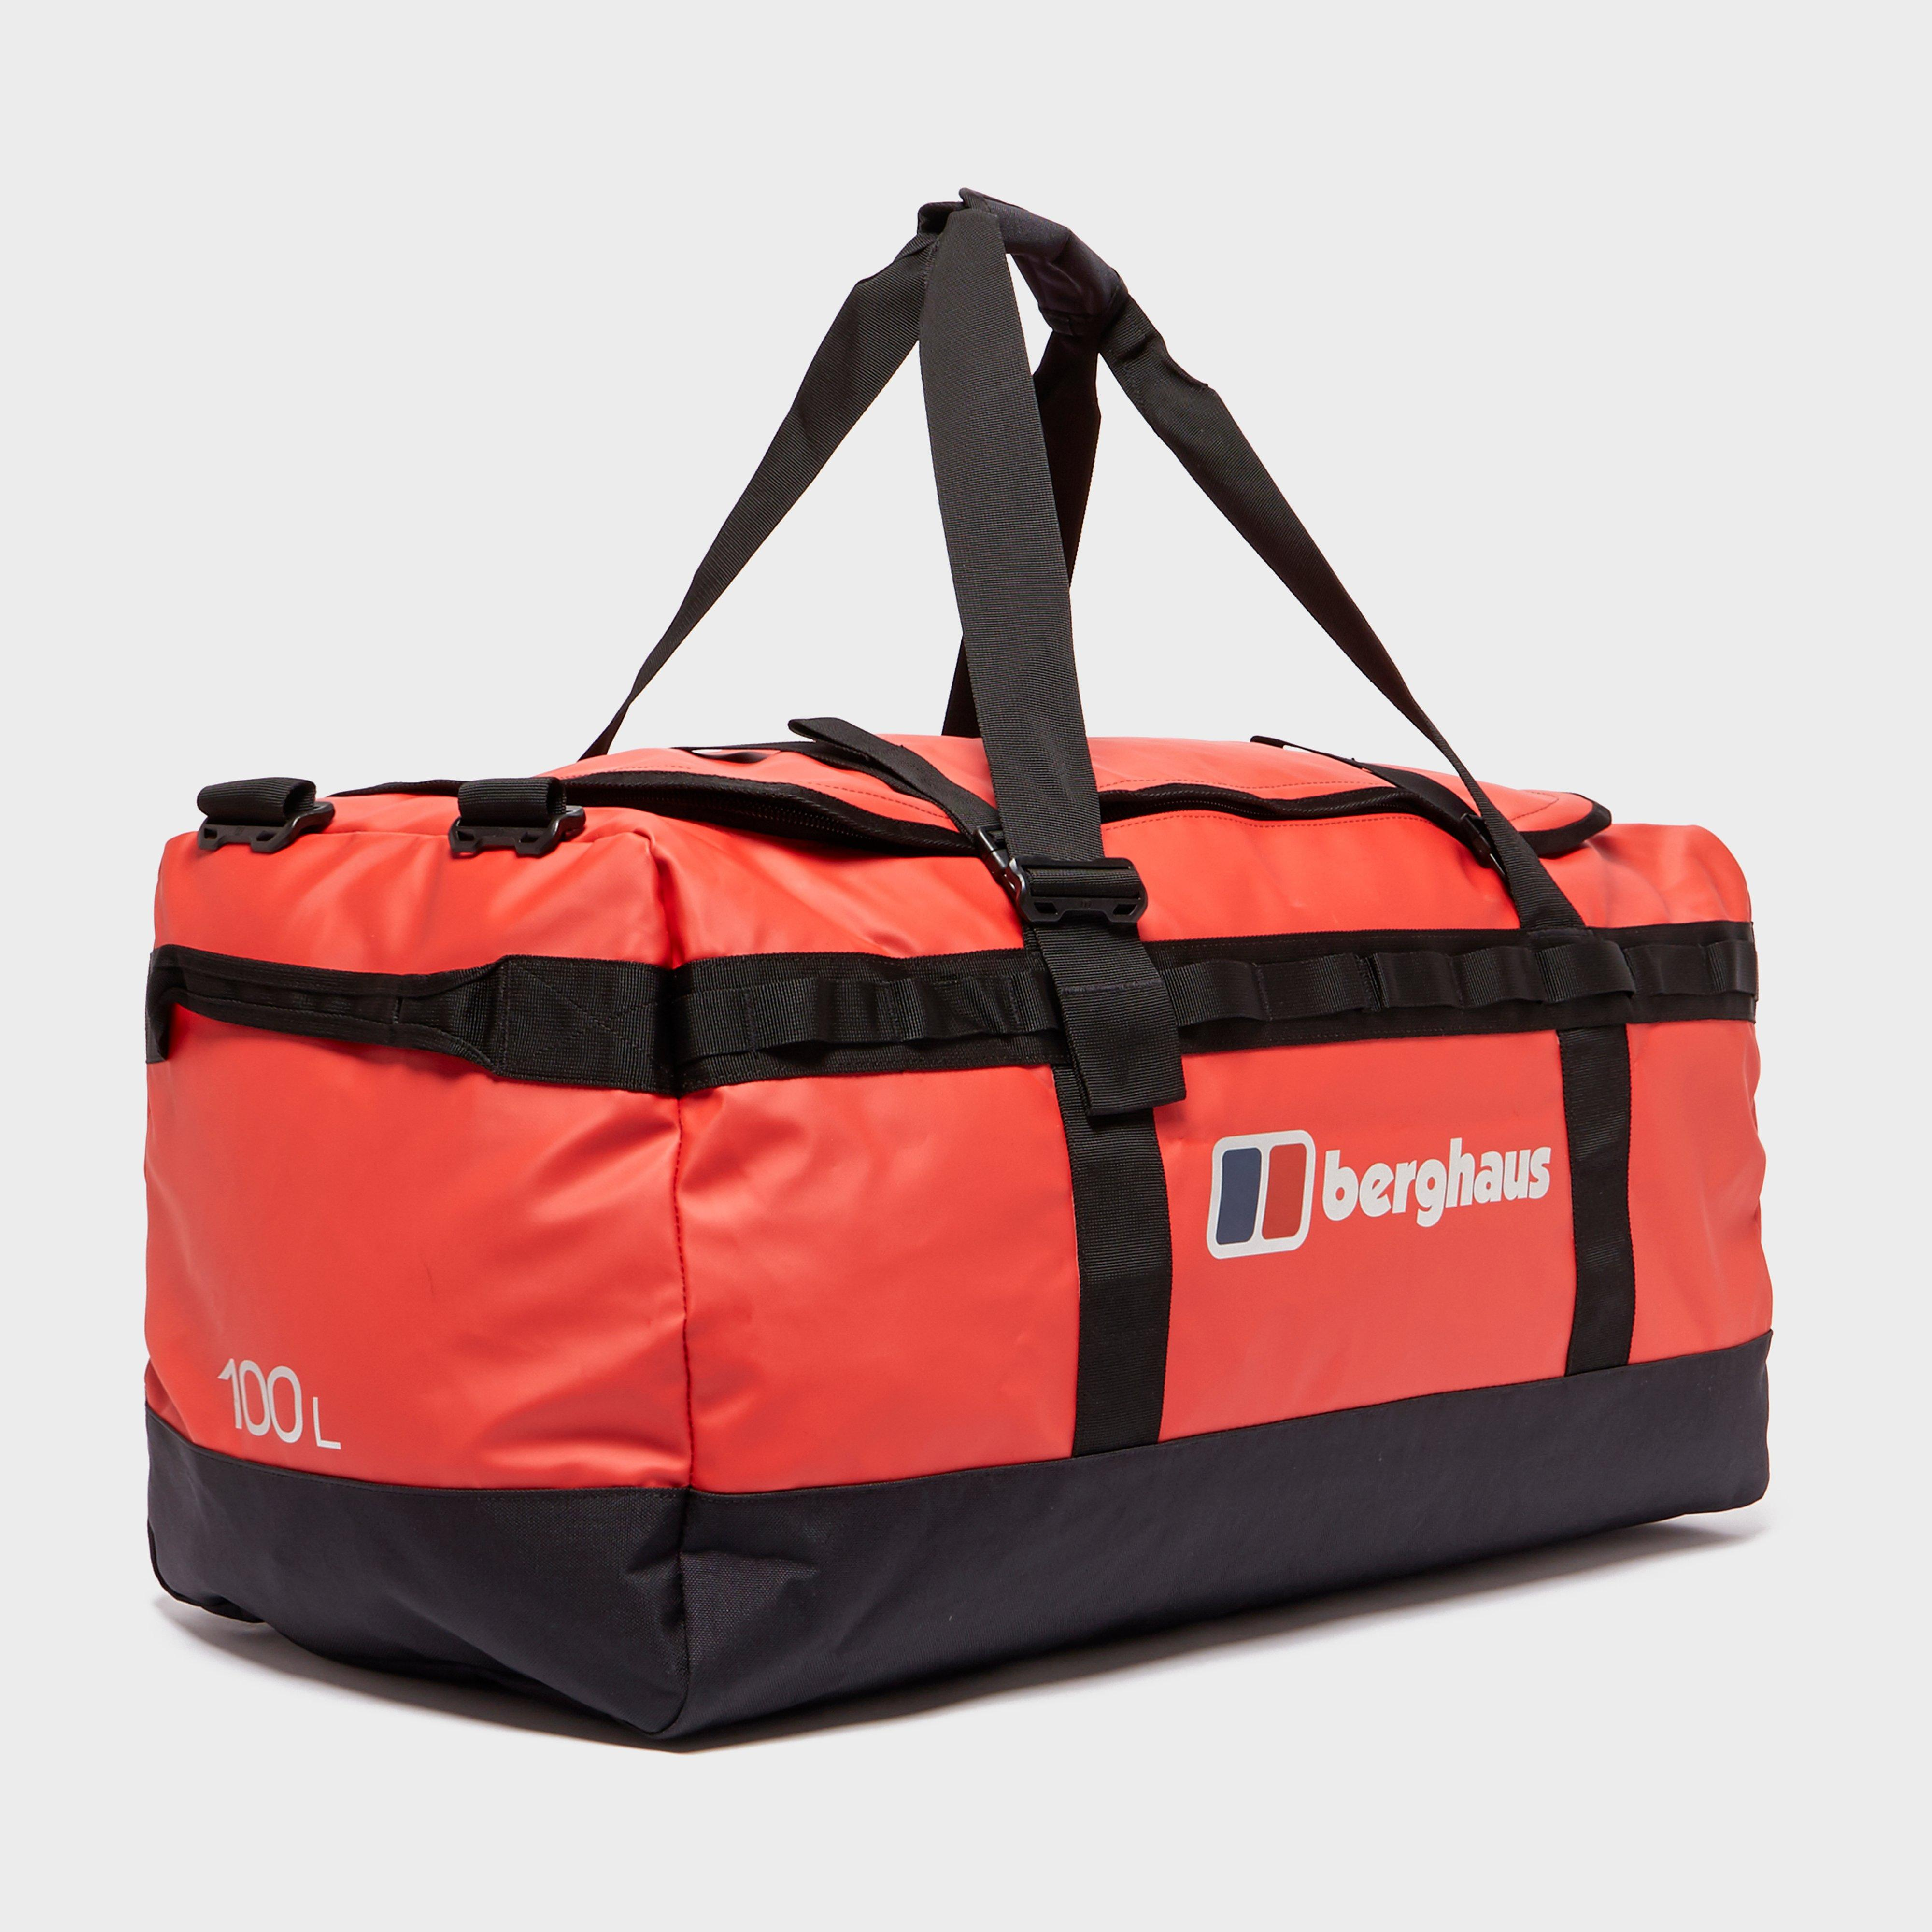 Berghaus 100l Holdall - Red/red  Red/red